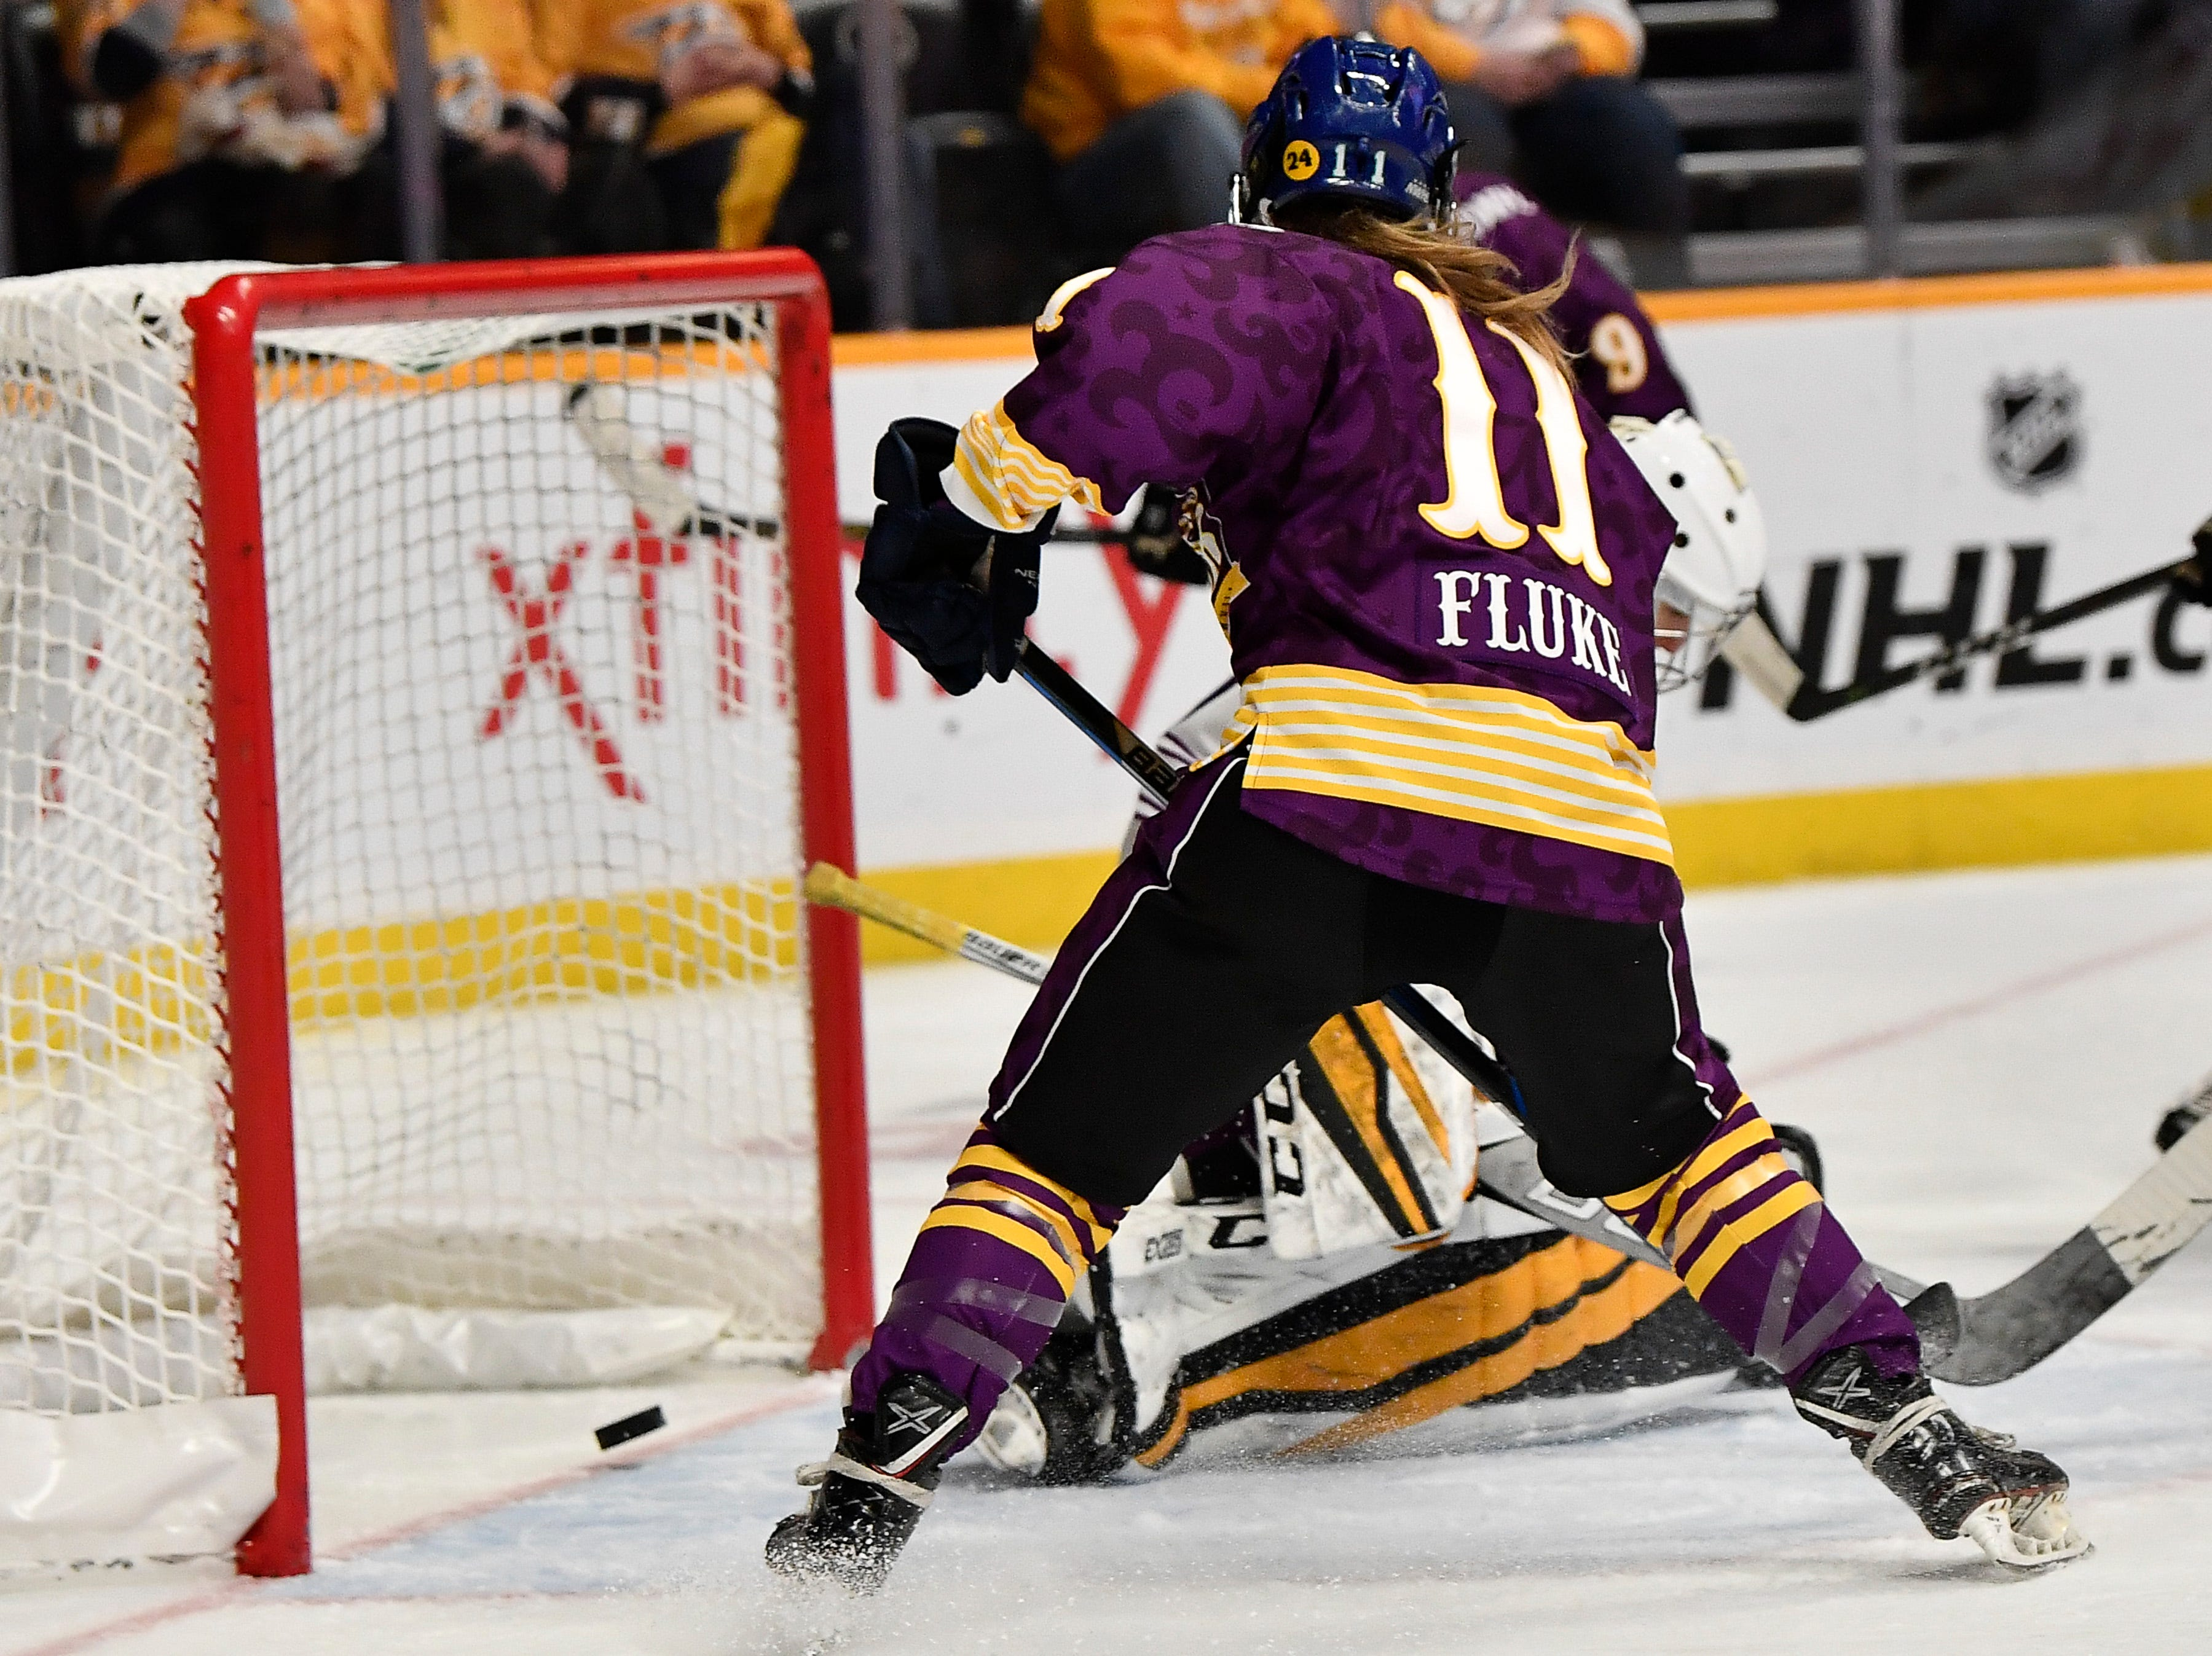 Team Stecklein's Emily Fluke scores a goal past Team Szabados goalie Katie Burt during the second half of the NWHL All Star game at Bridgestone Arena Sunday Feb. 10, 2019 in Nashville, Tenn.